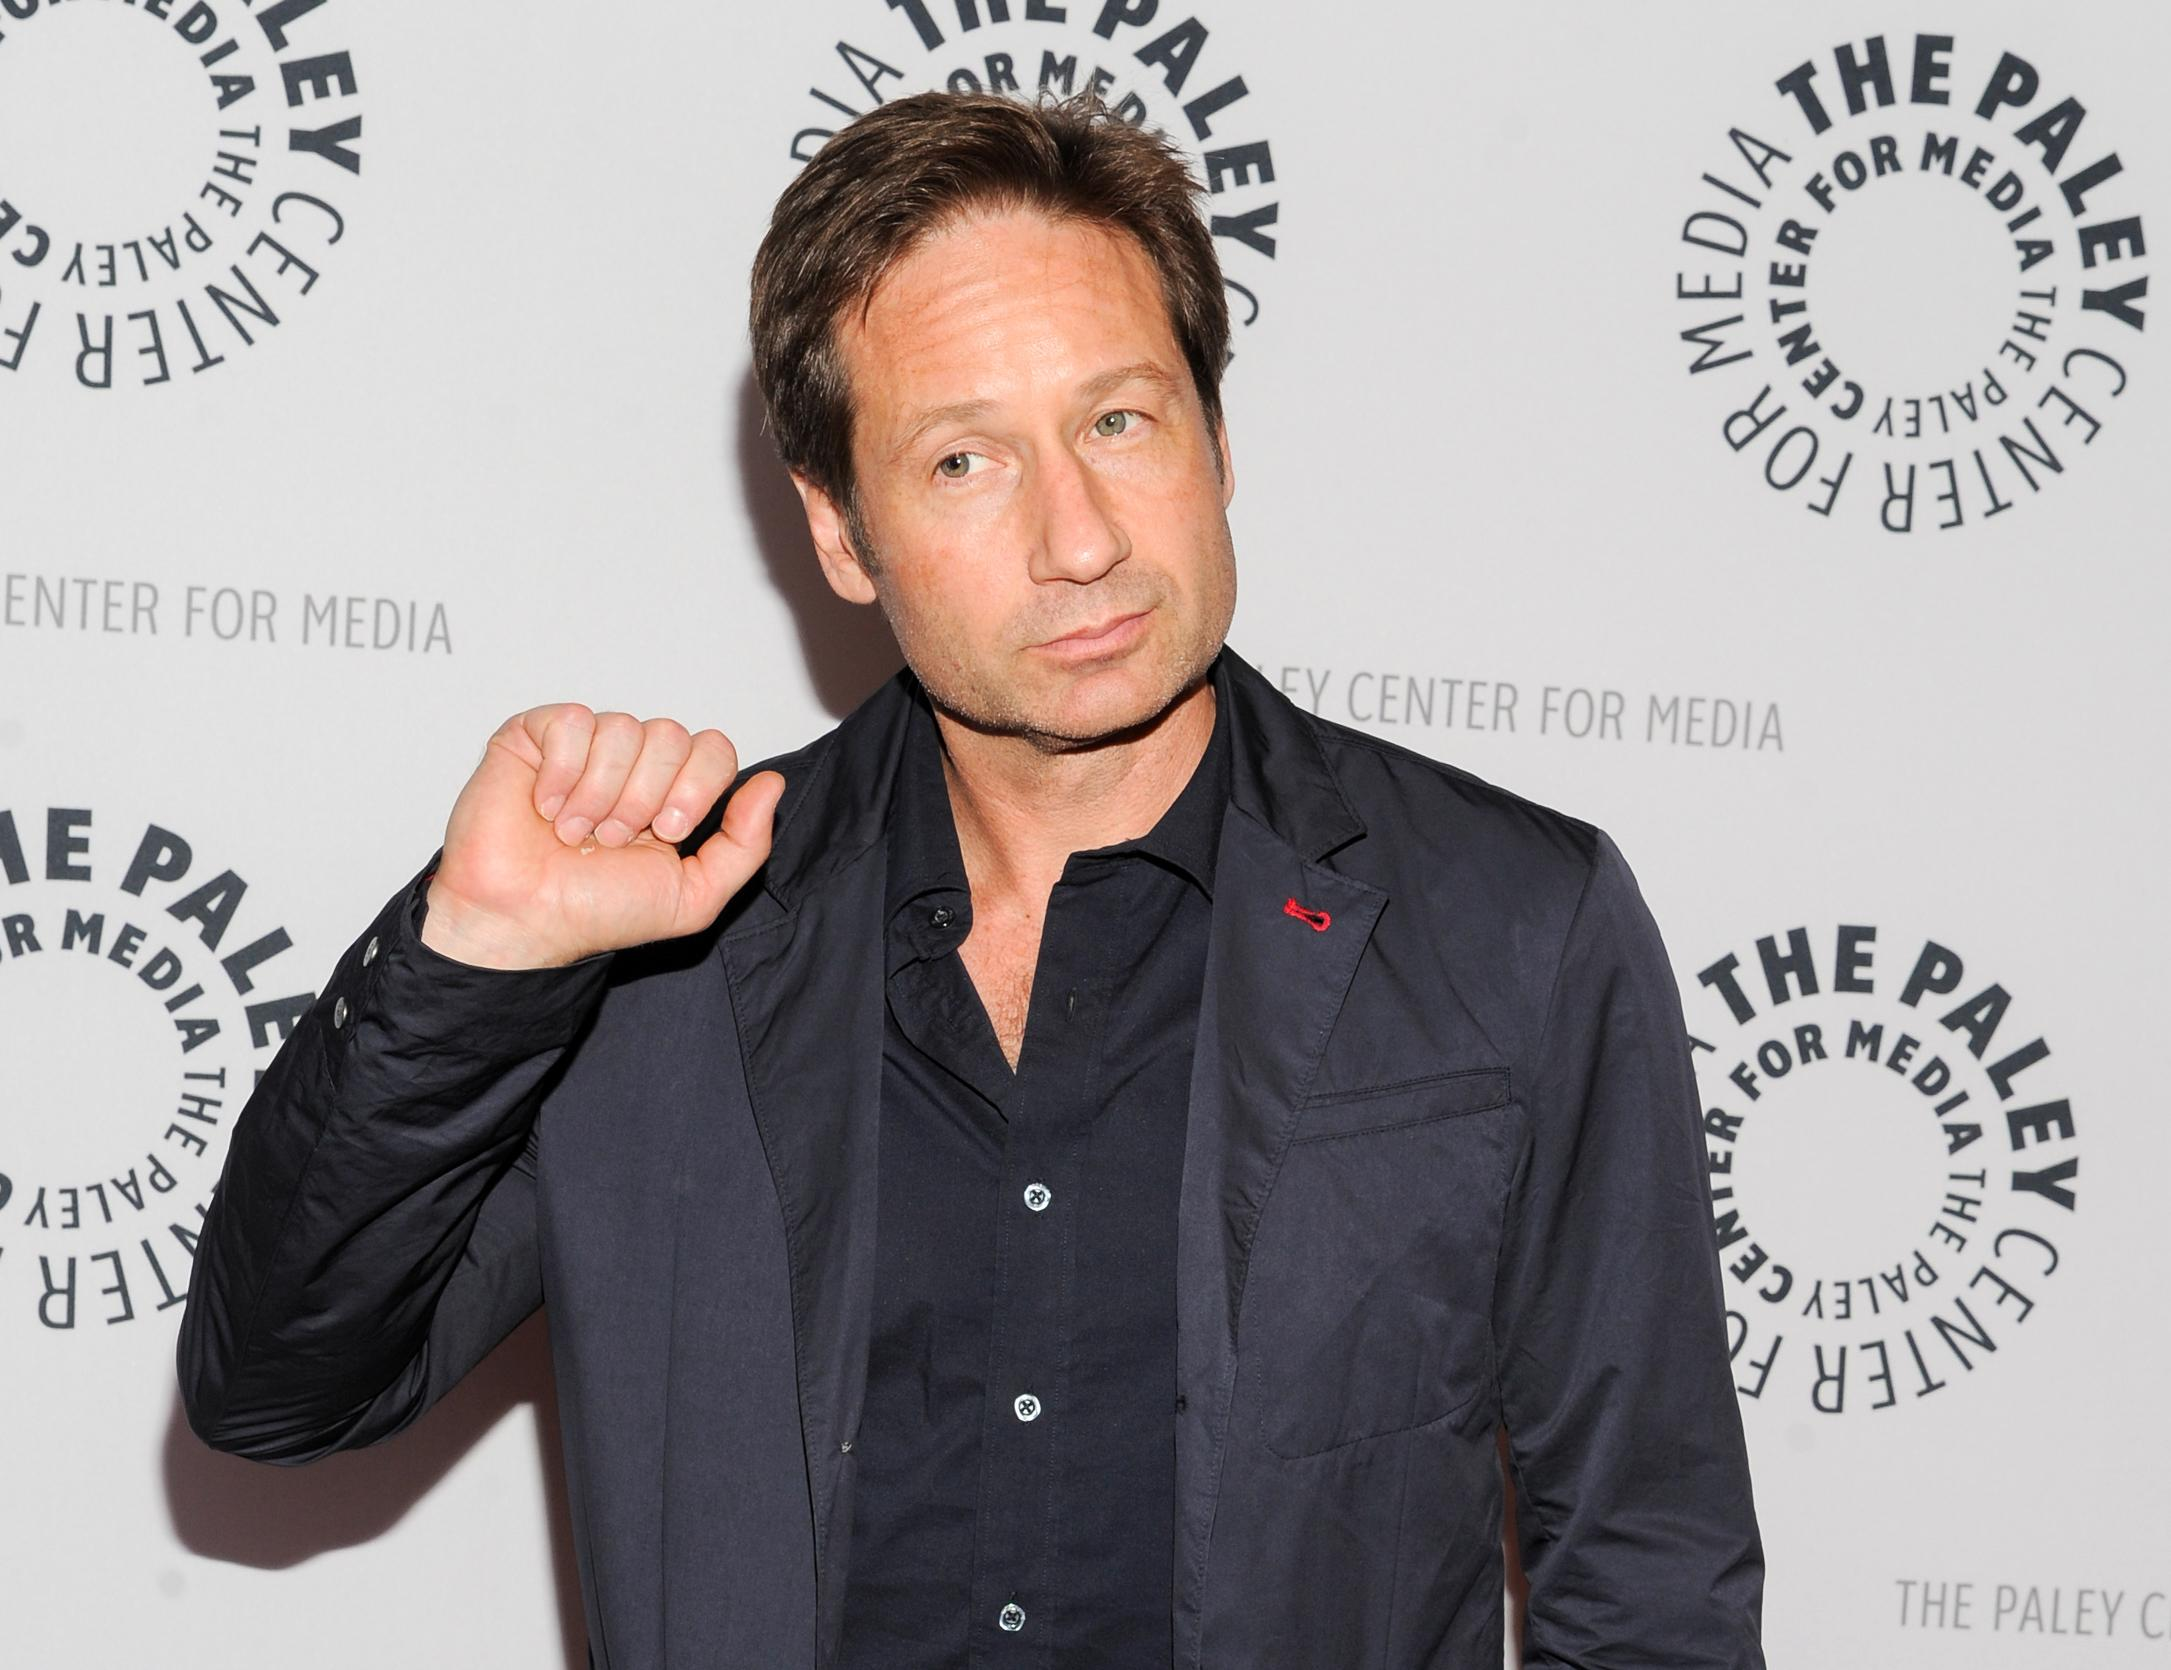 'X Files' actor David Duchovny to release 1st album in May